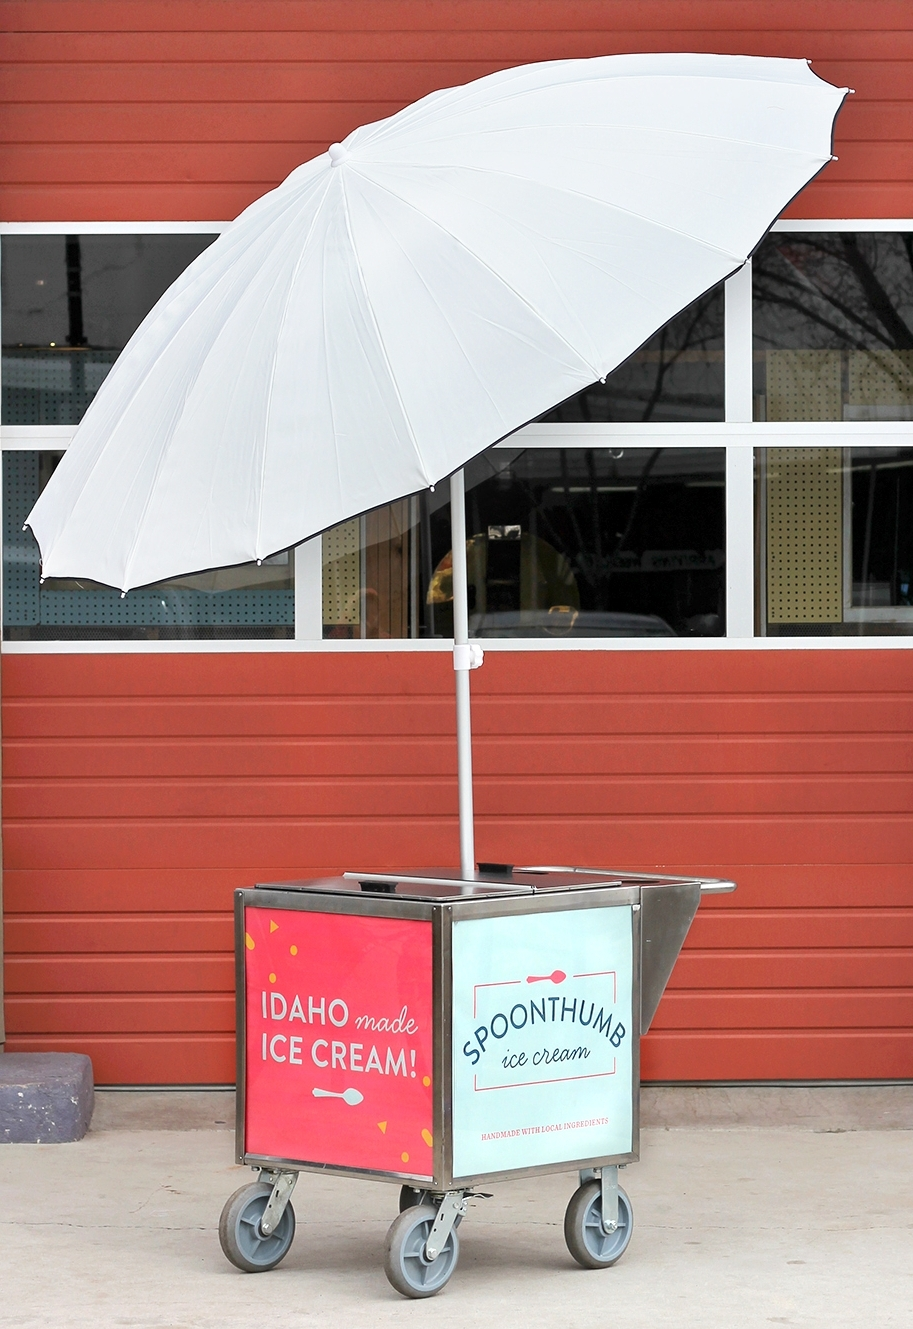 Spoonthumb Ice Cream Cart